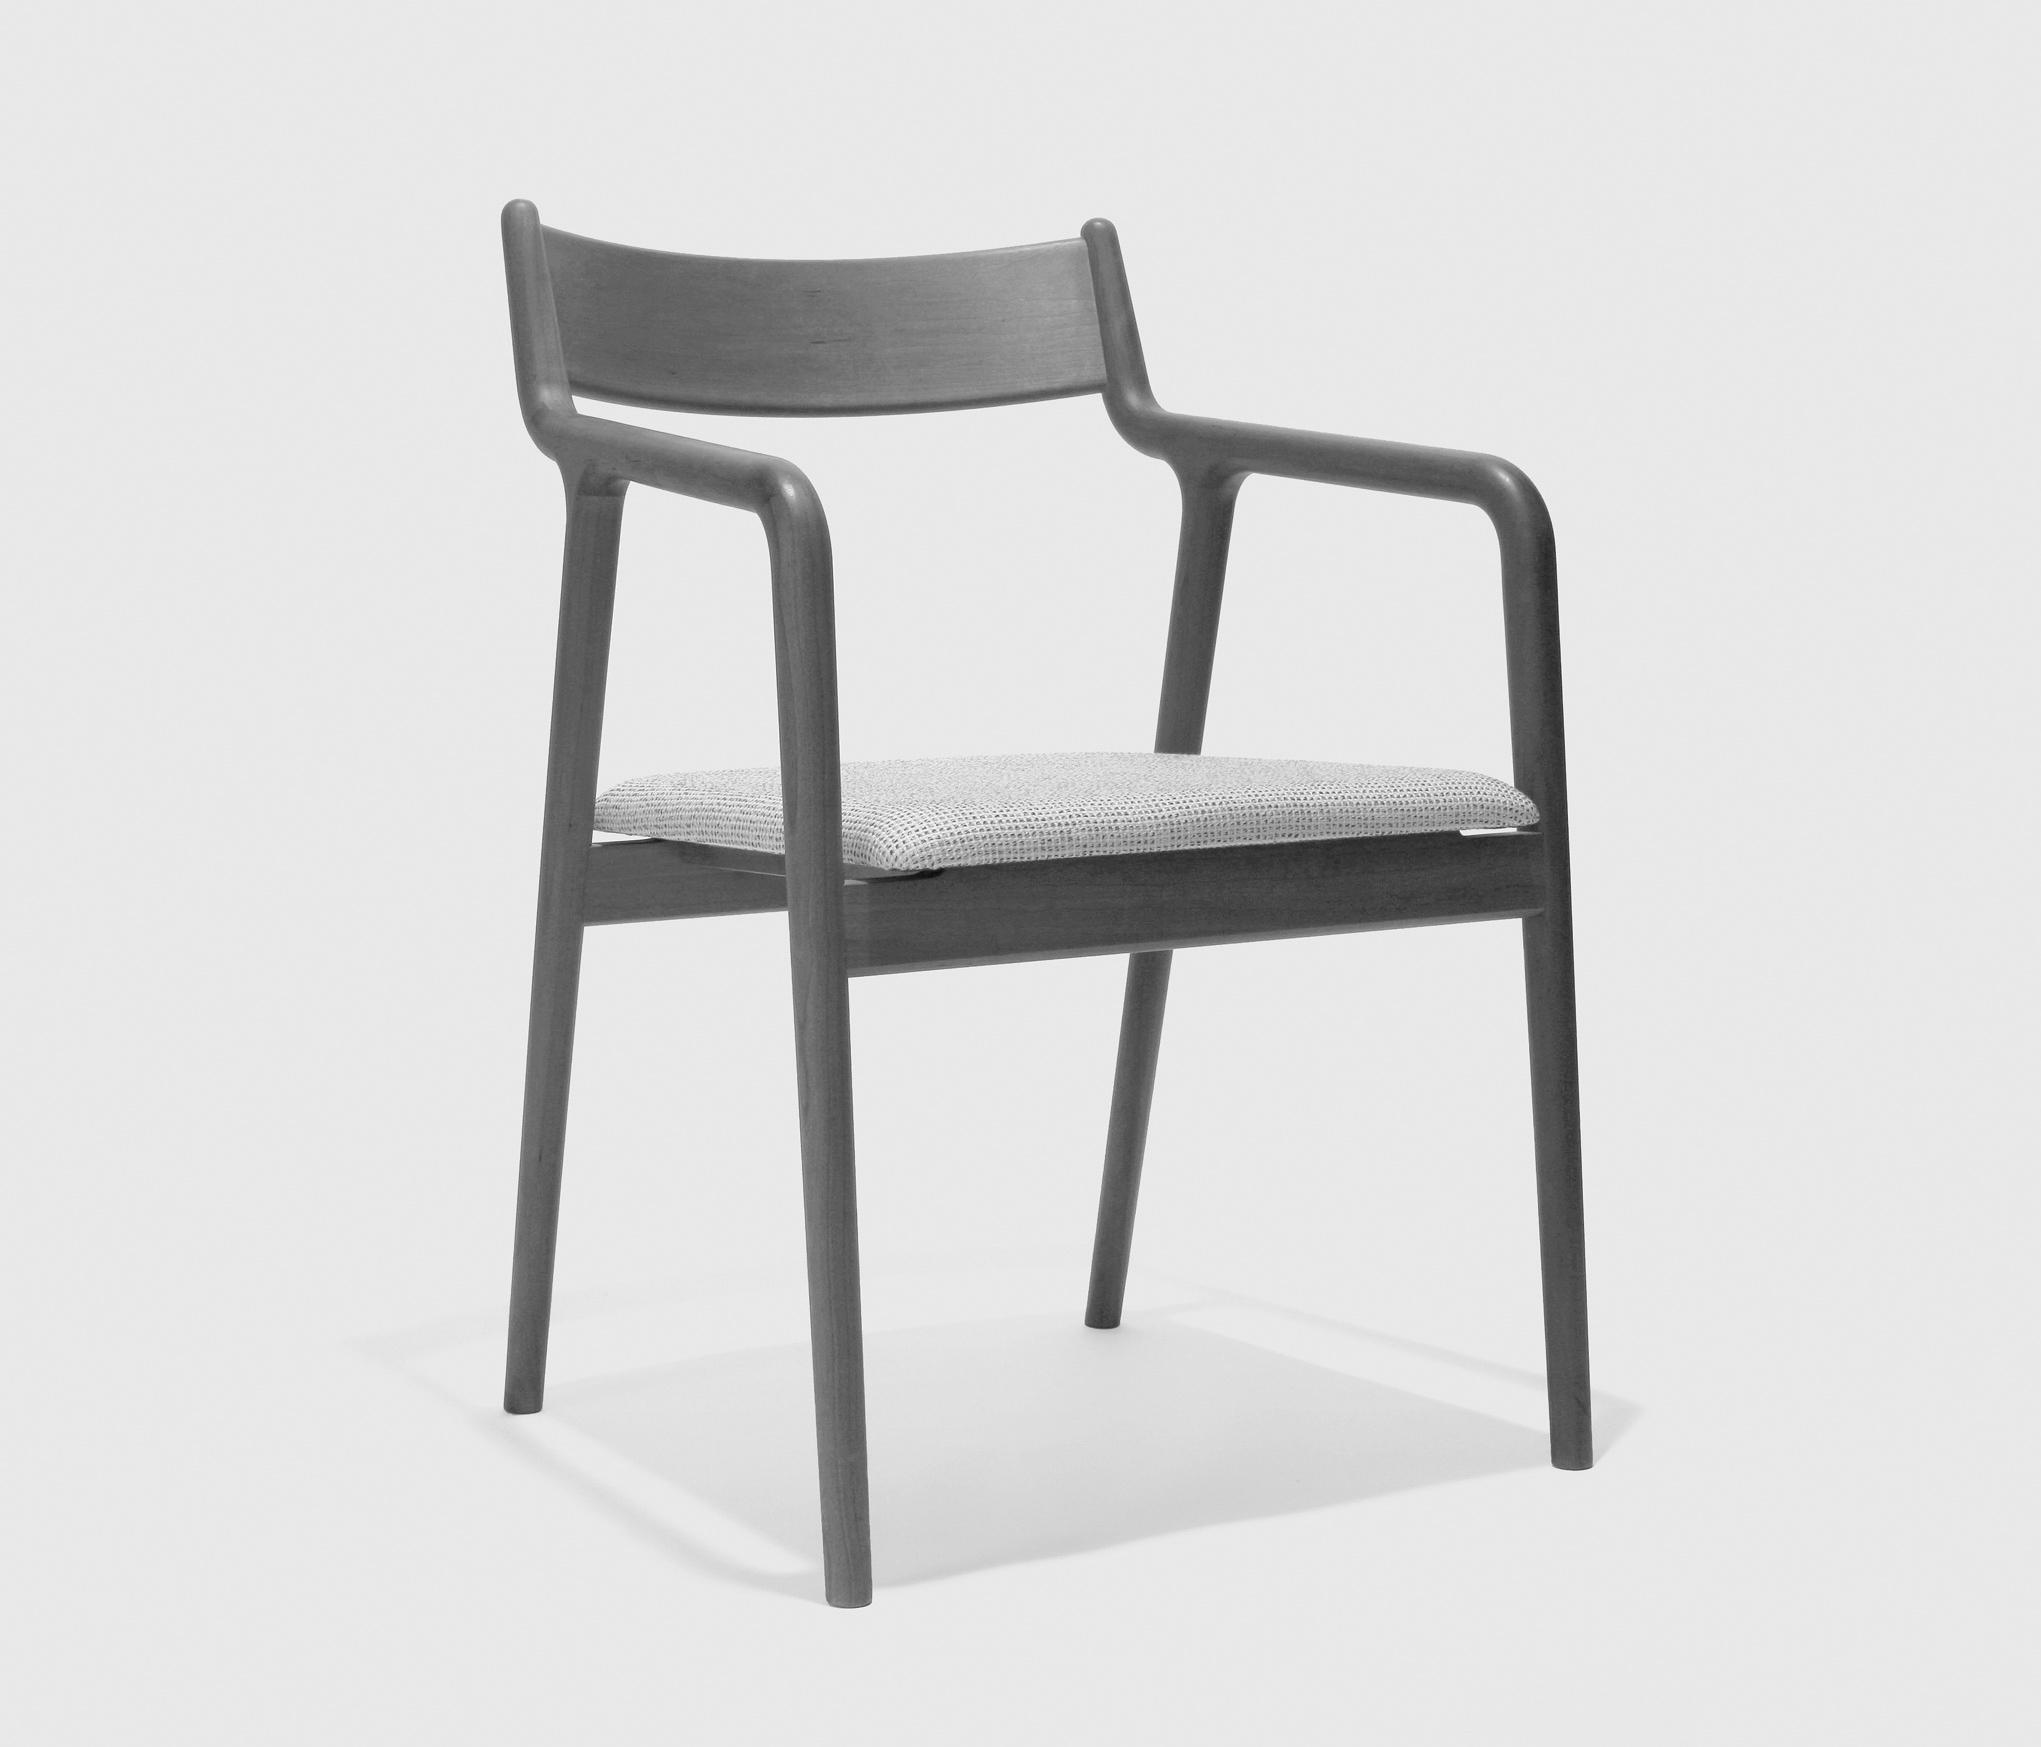 Pepe Garden Furniture Pepe visitors chairs side chairs from miyazaki architonic pepe by miyazaki visitors chairs side chairs workwithnaturefo